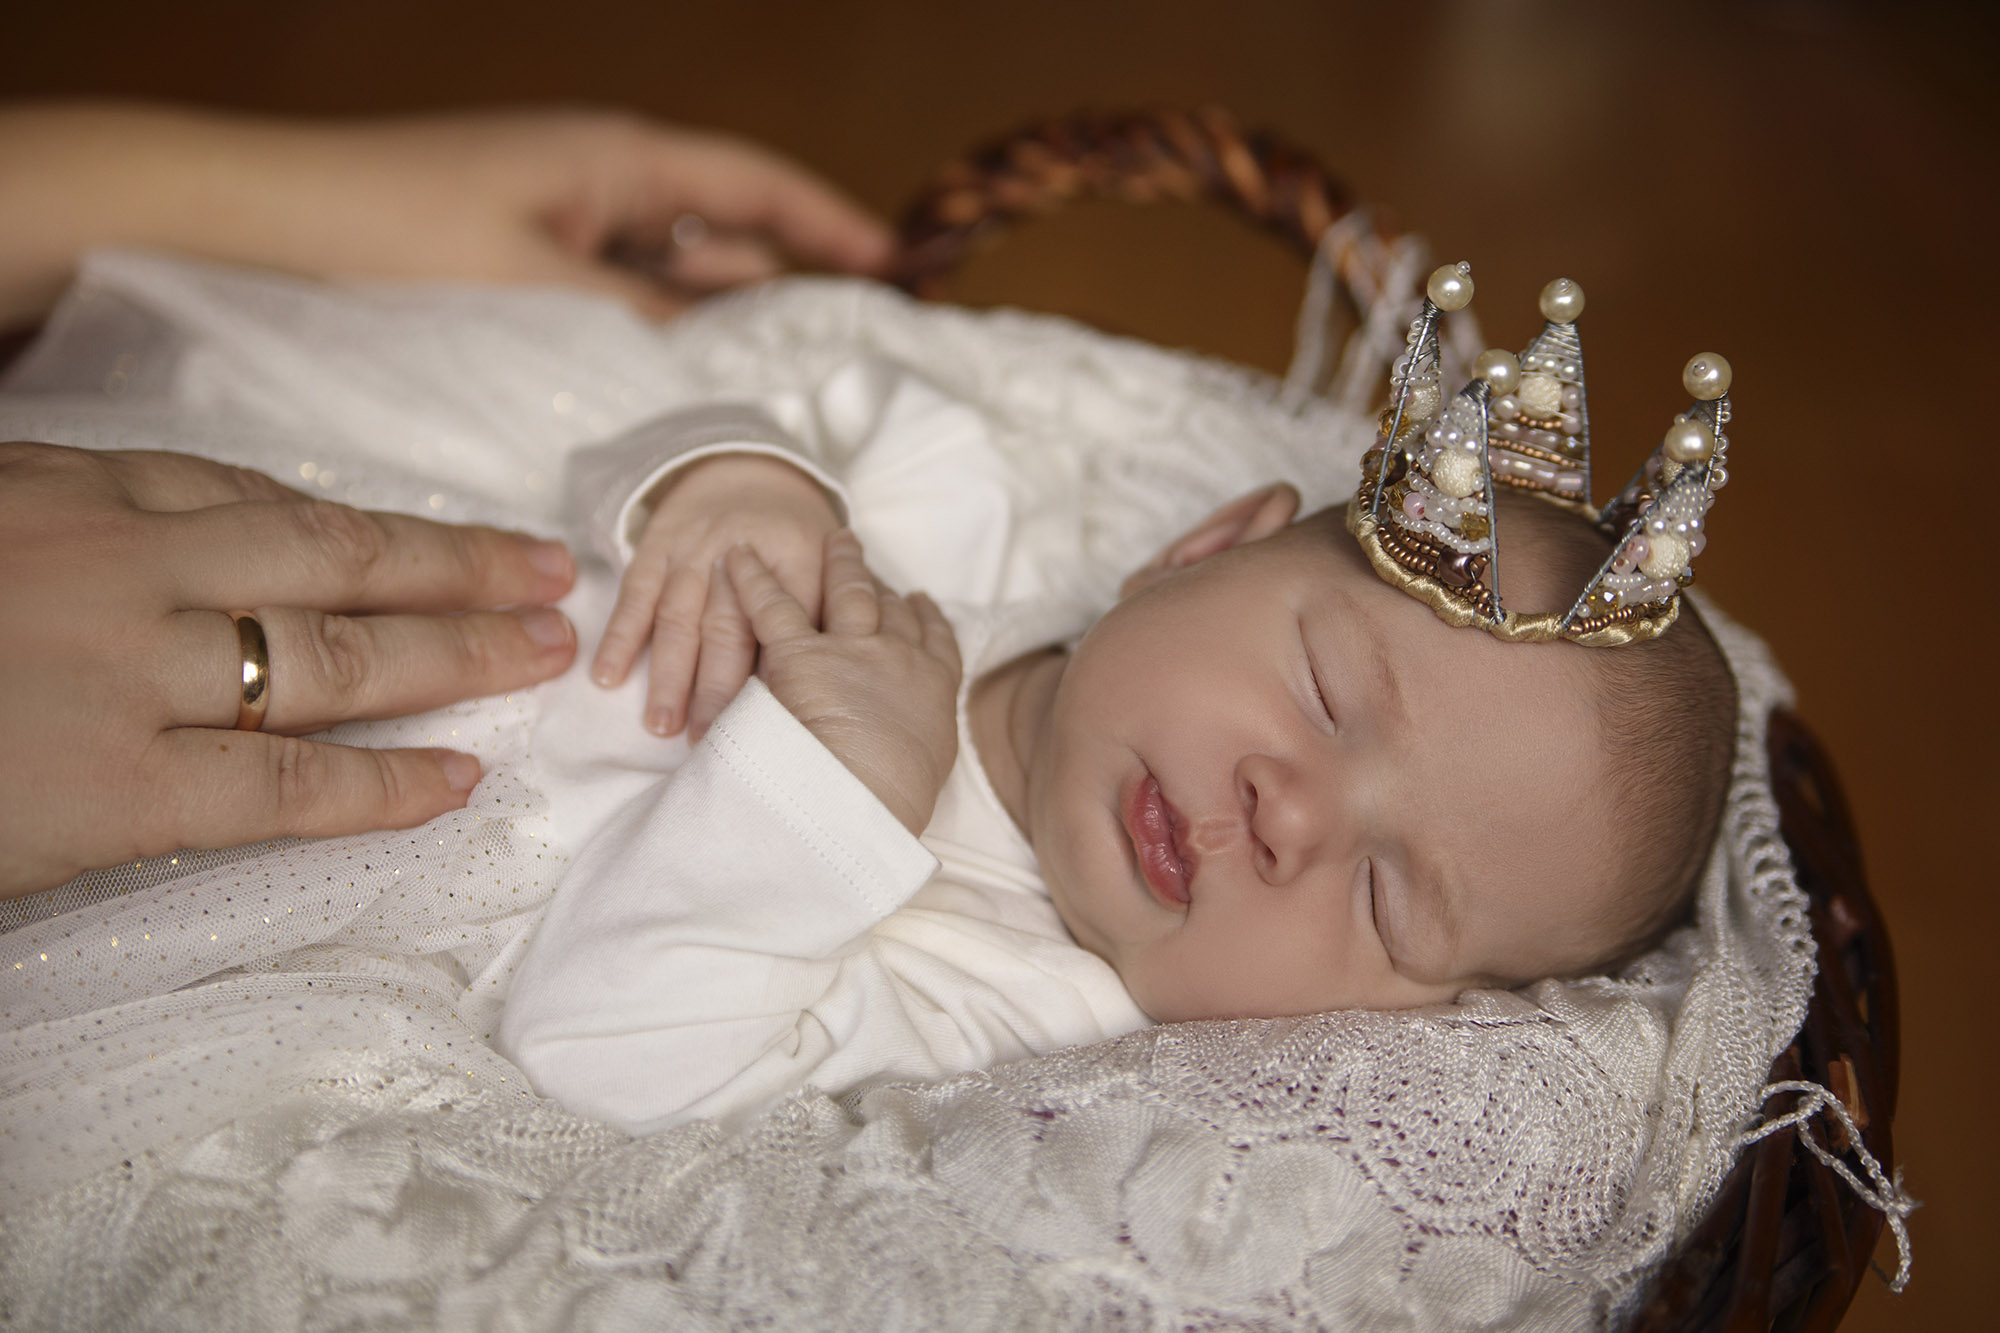 Sleeping infant in a basket with a crown